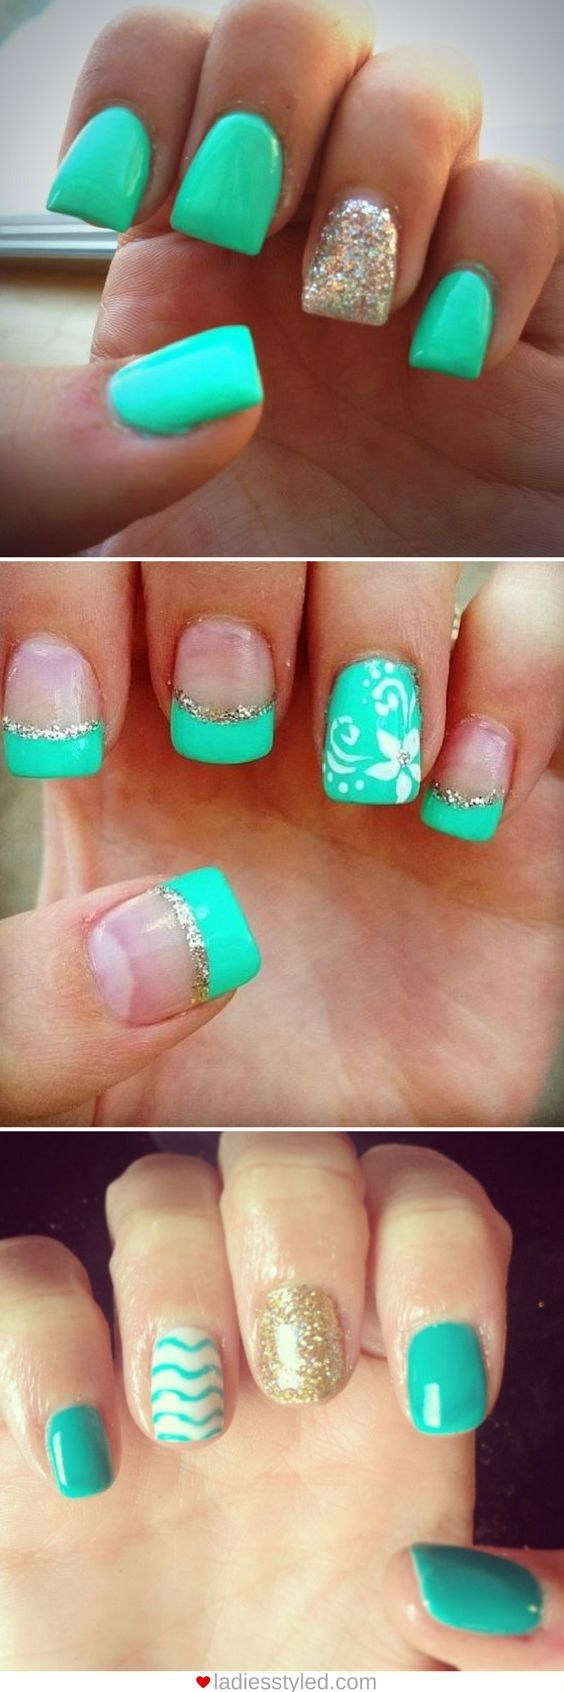 Best 25+ Nail ideas ideas on Pinterest | Finger nails ...